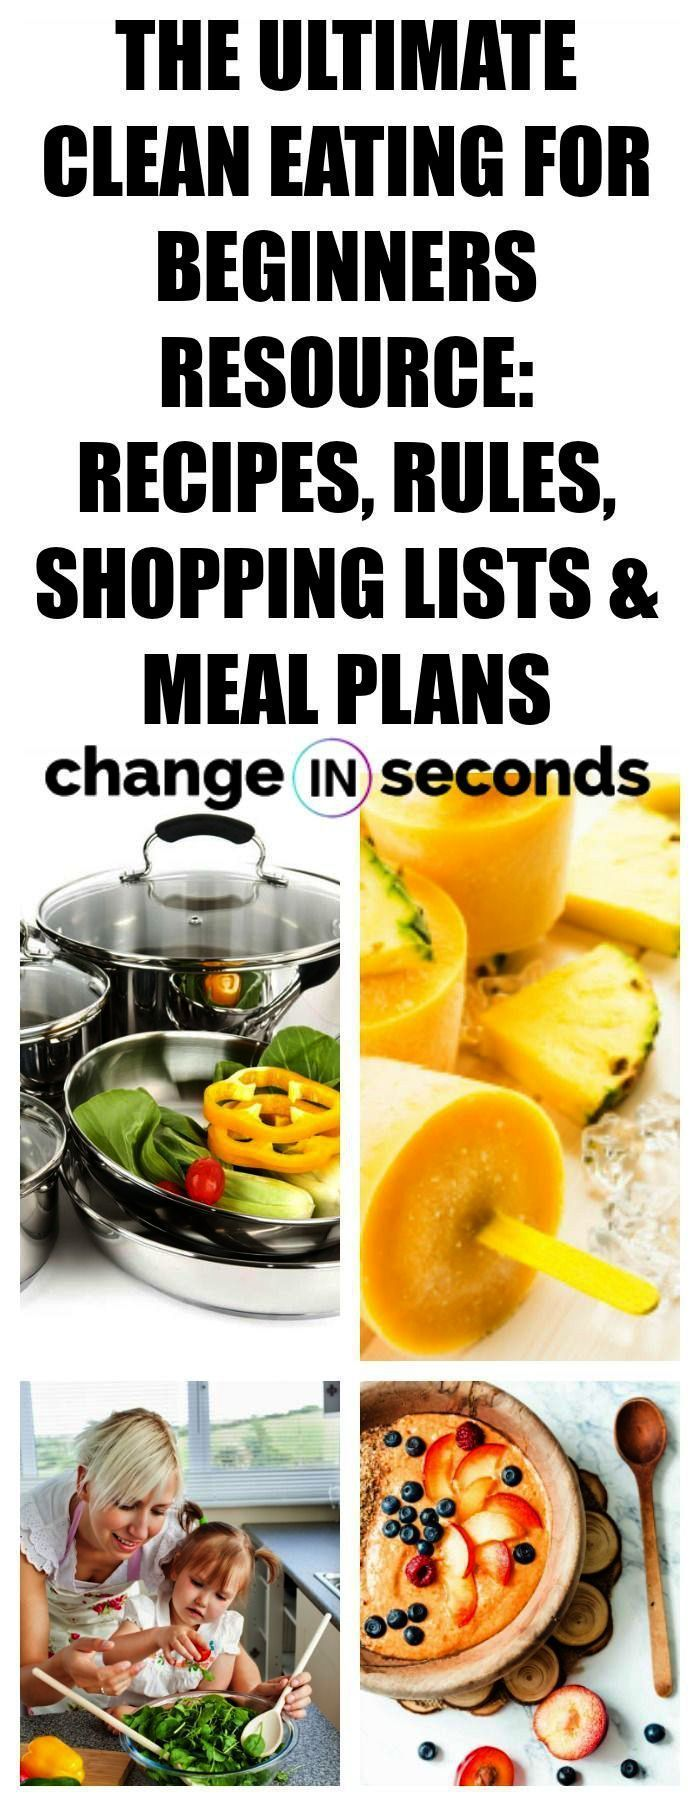 Clean Eating Meal Prep For Beginners within Healthy Eating Habits In China & Clean Eating Starter Grocery List per Benefits Of Healthy Eating Quotes e... - #beginners #clean #eating #habits #healthy #within - #new #cleaneatingforbeginners